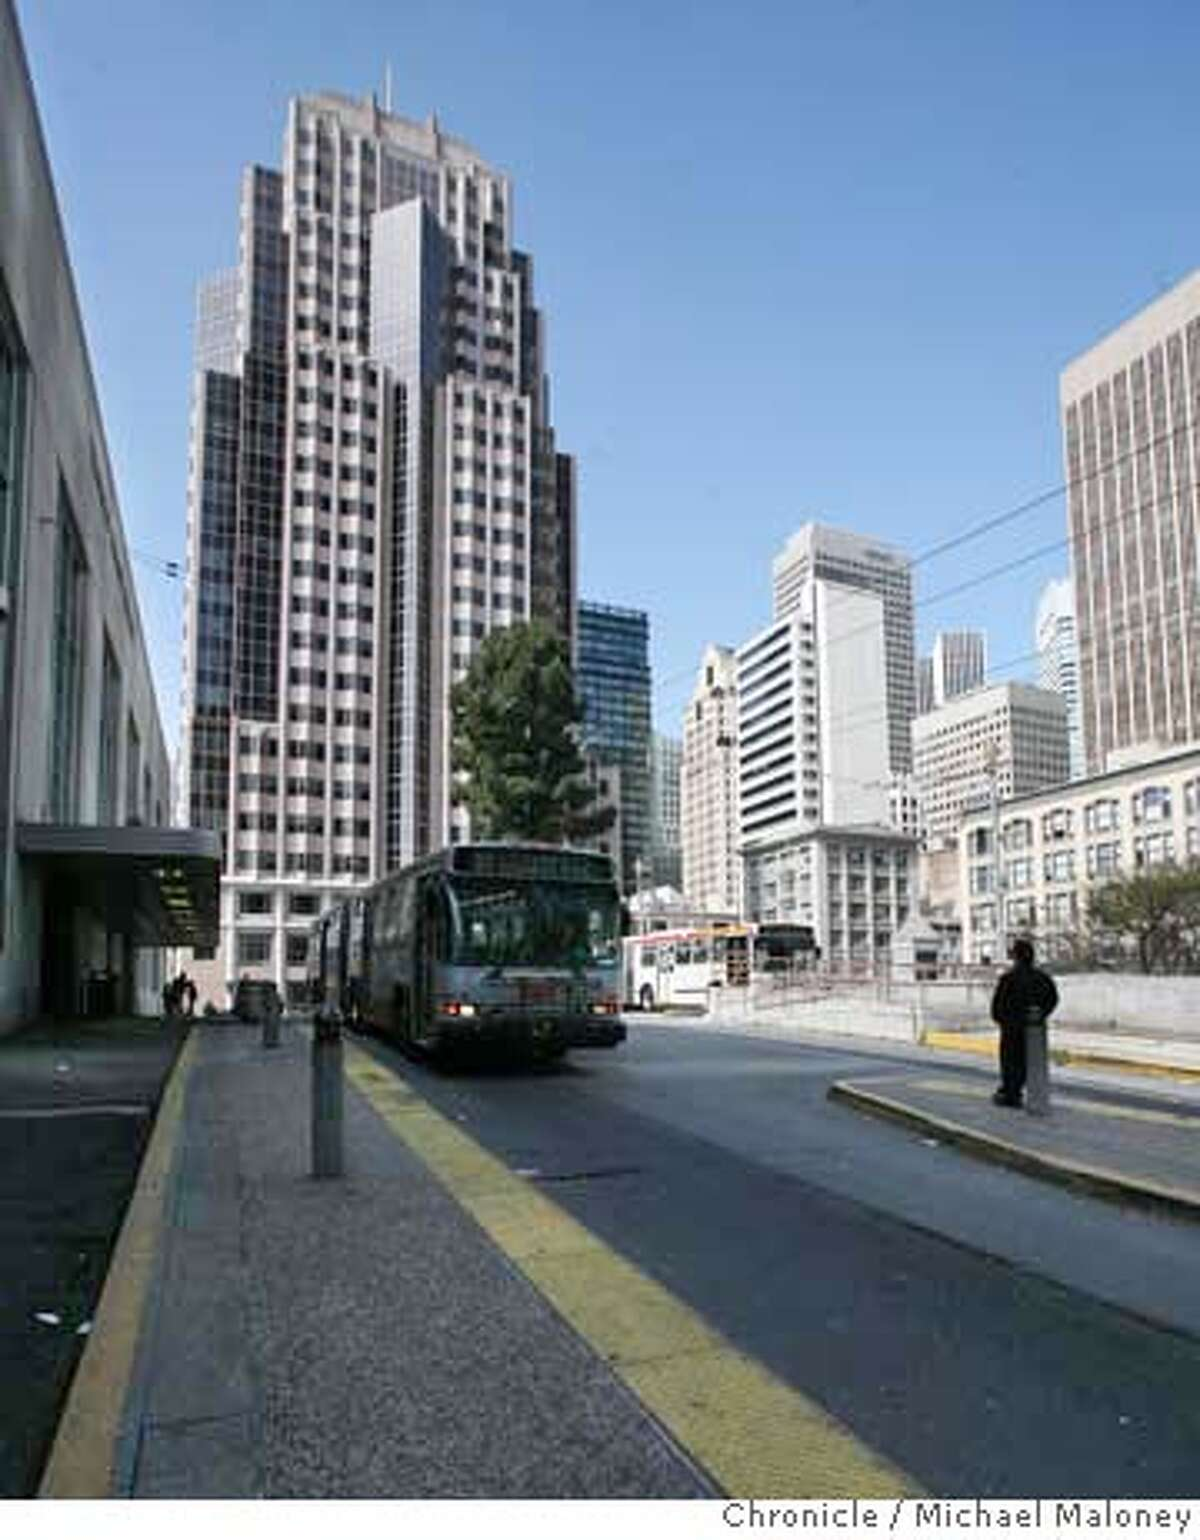 The skyline around the San Francisco Transbay Terminal can change in the near future when San Francisco city officials next week propose new zoning rules that would allow extra-tall towers on a few sites around the Transbay Terminal in San Francisco, Calif. Photo taken on April 24, 2008 in front of the terminal looking towards Mission and 1st Streets. Photo by Michael Maloney / San Francisco Chronicle